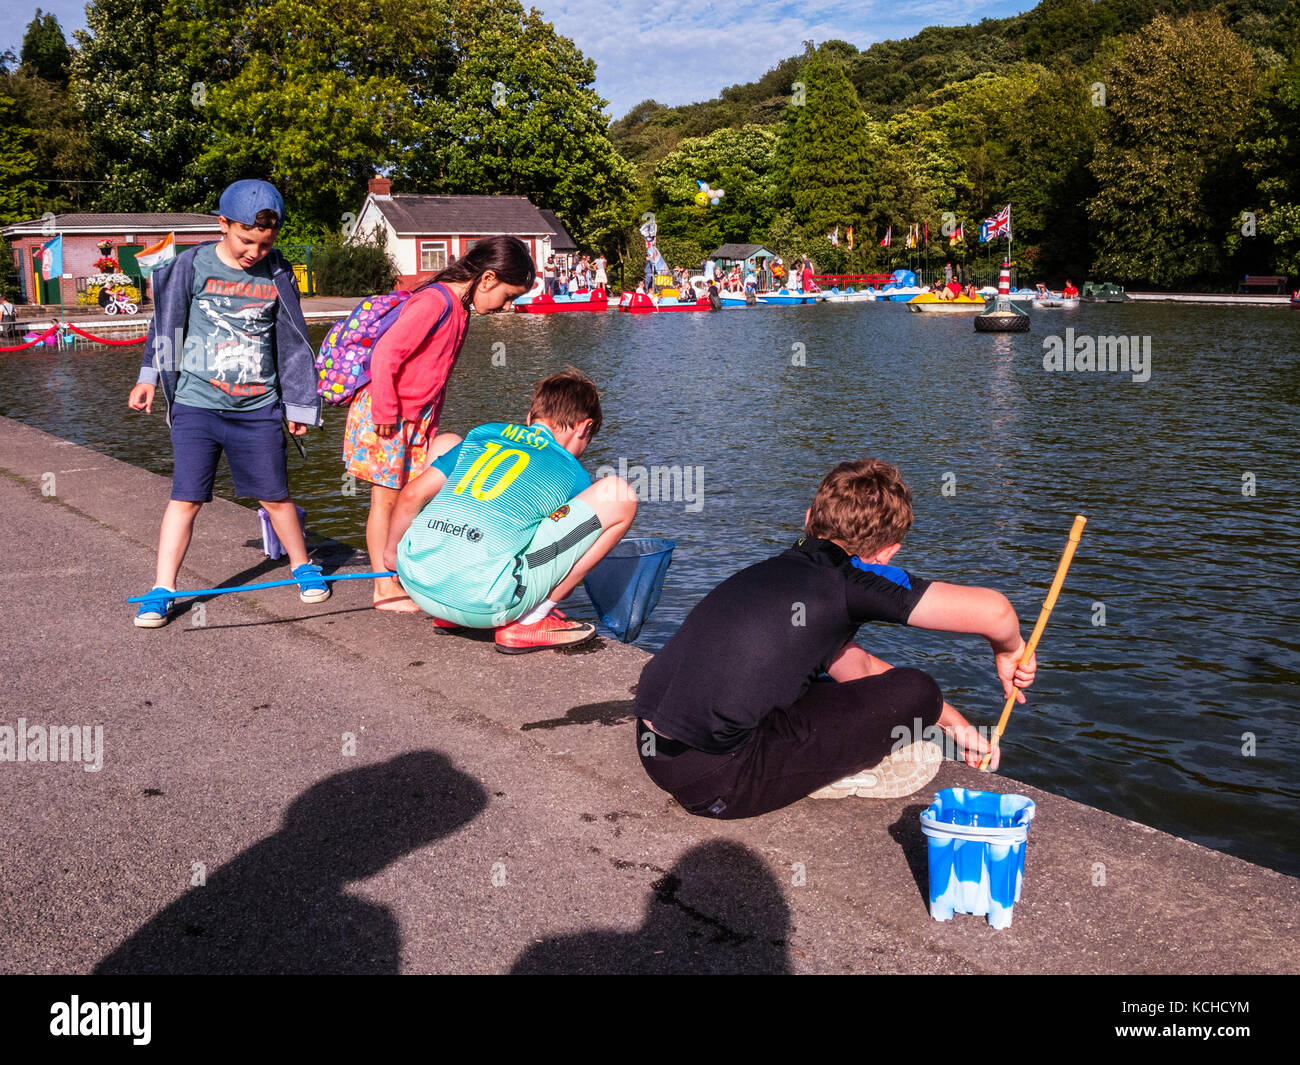 2 Boys fishing for newts in boating lake - Stock Image